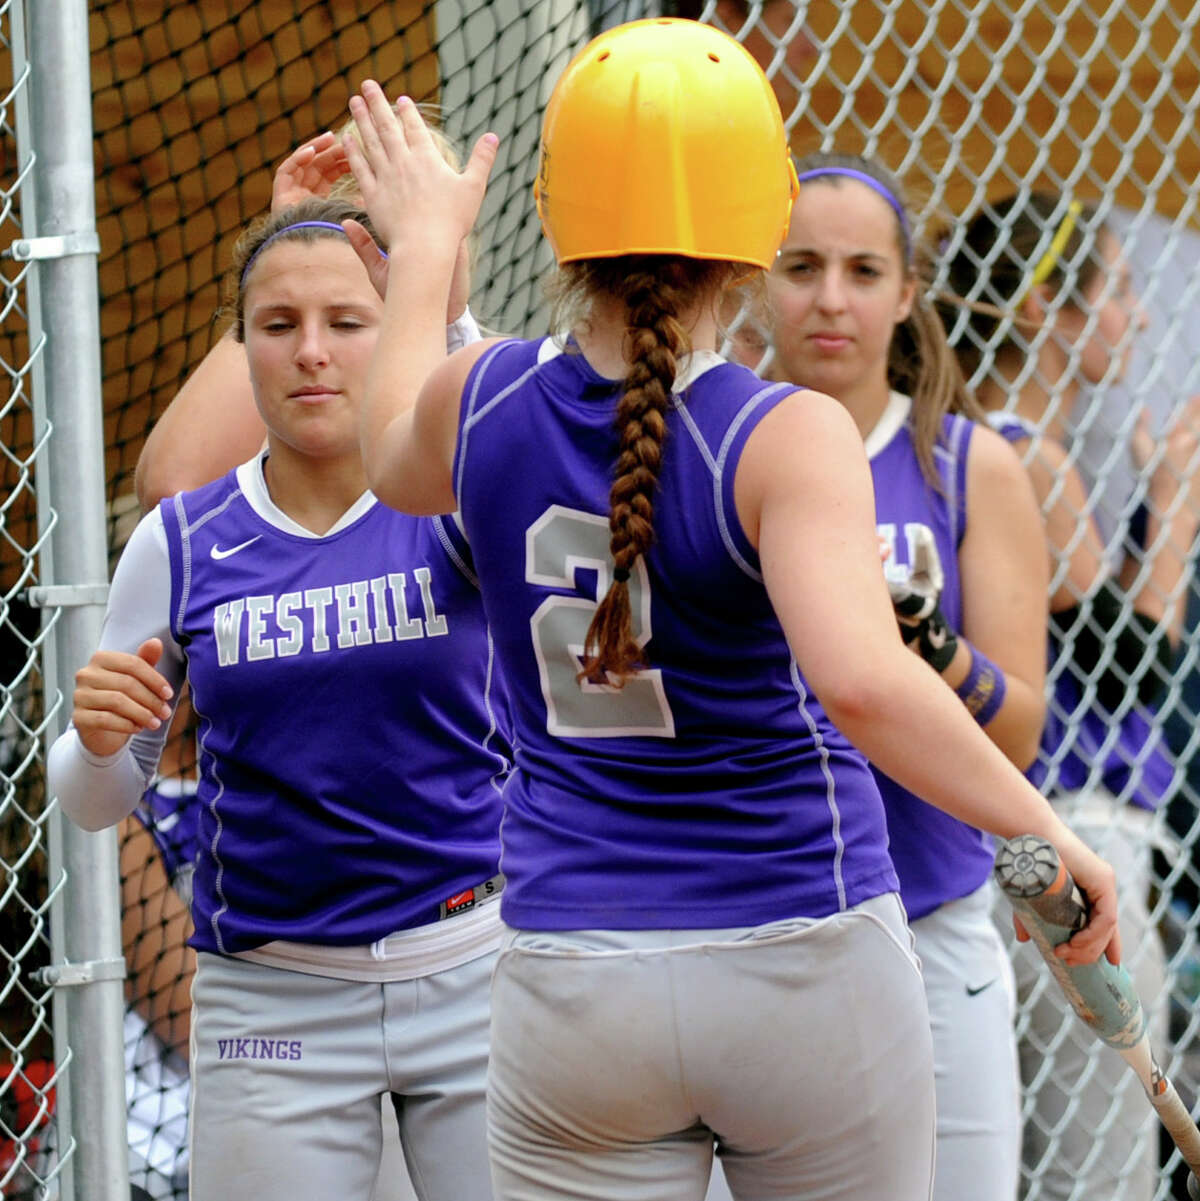 Westhill's Tami Wise gets high-fives after scoring a run during Friday's softball game against Mercy in Stamford on June 1, 2012.